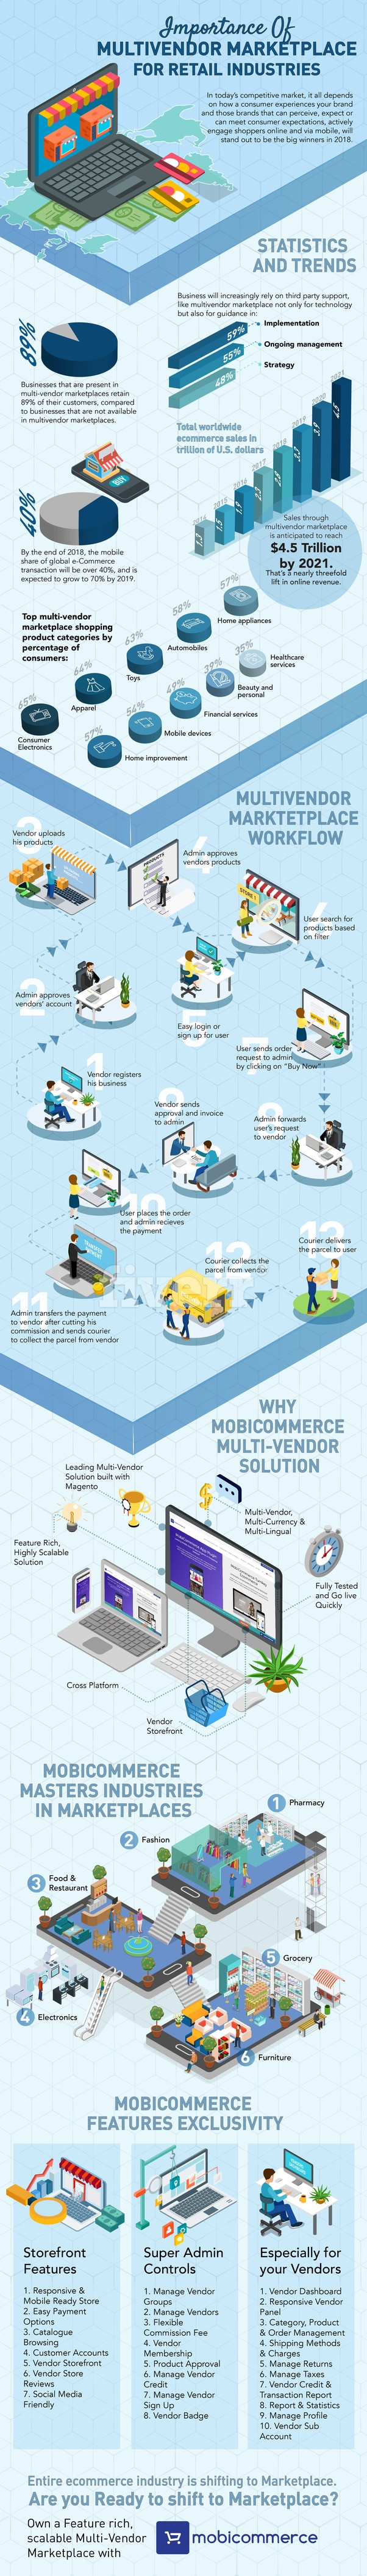 How to find B2B marketplace in USA - Quora